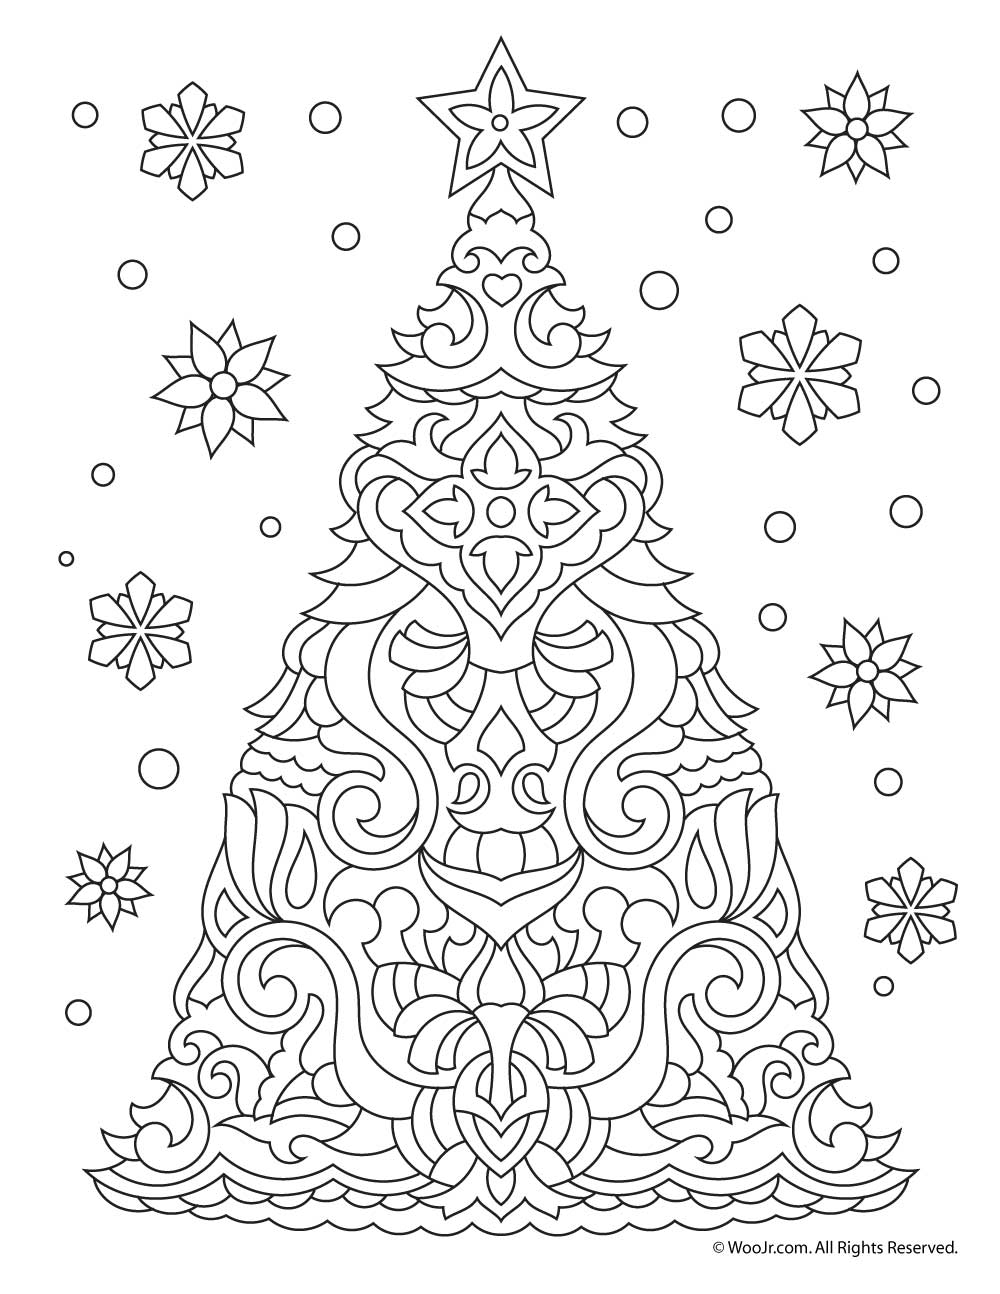 Christmas Adults Coloring Pages With Tree Adult Page Woo Jr Kids Activities